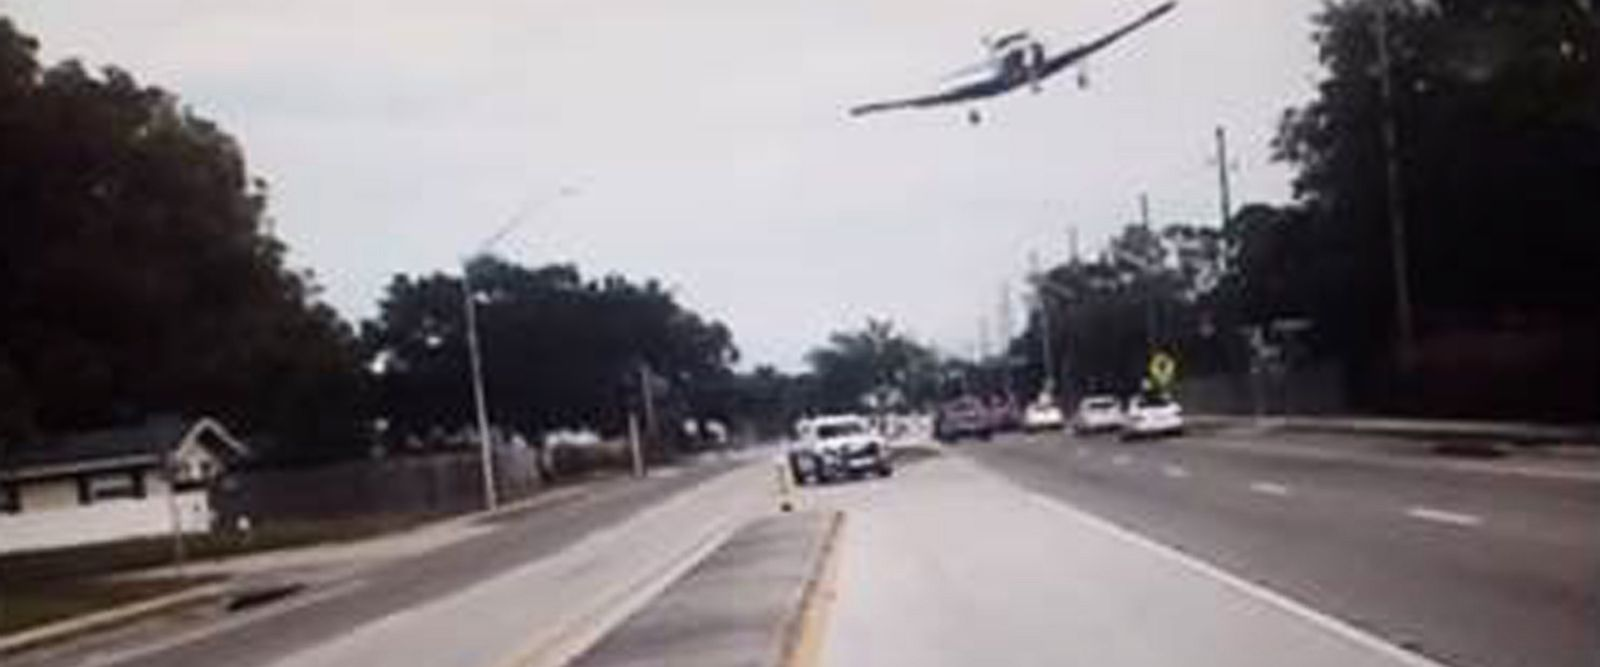 VIDEO: Police dashcam captures small plane moments before crash